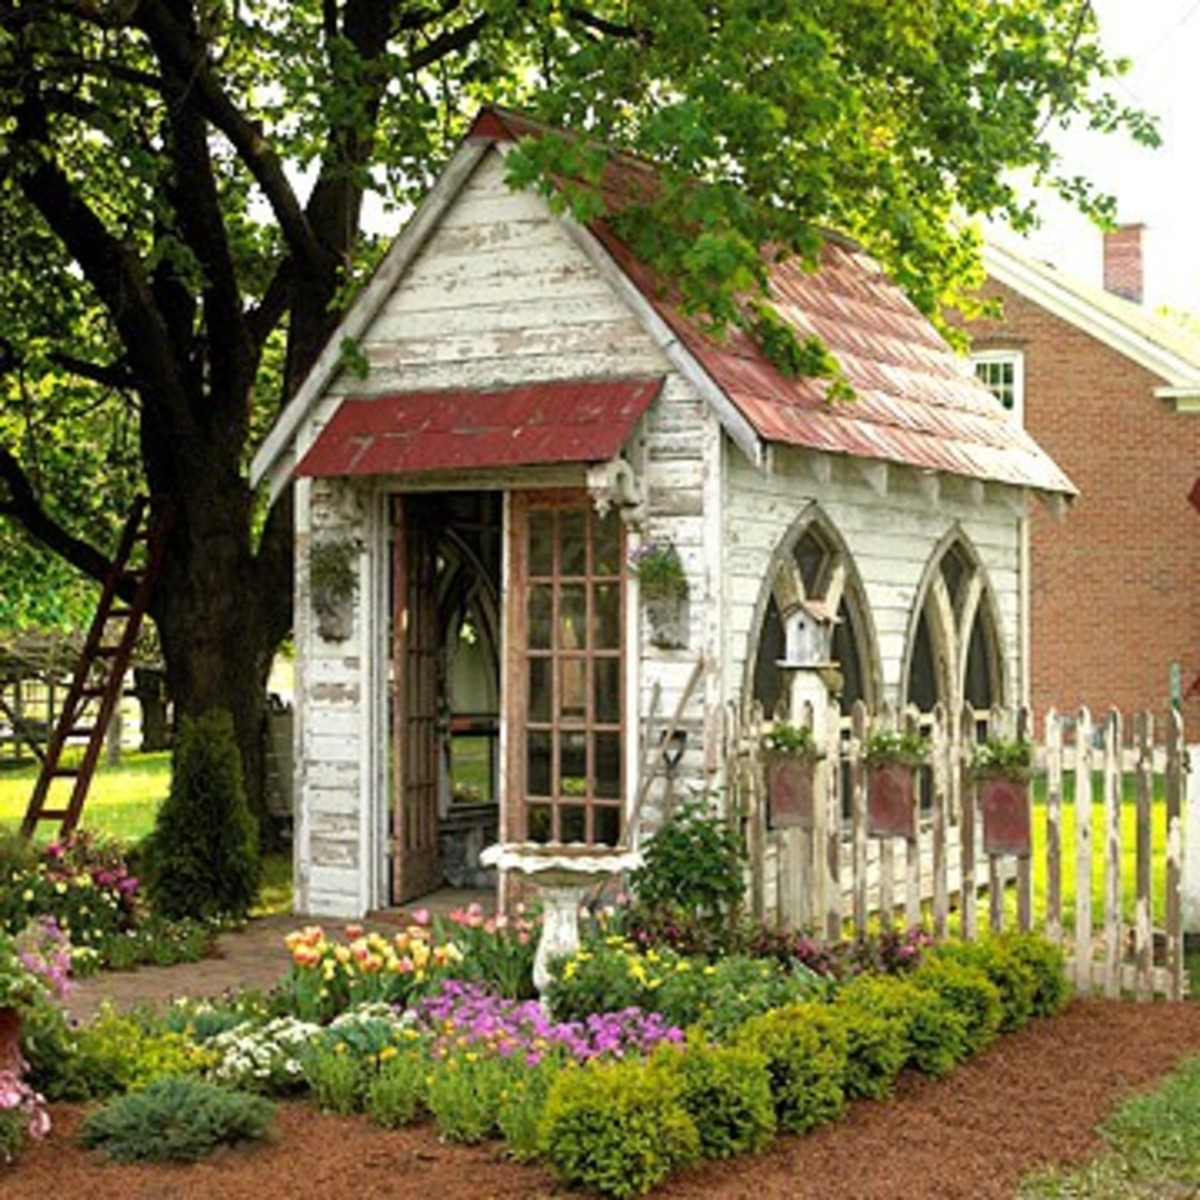 Story Book Garden Shed Resembling Church with Arched Windows